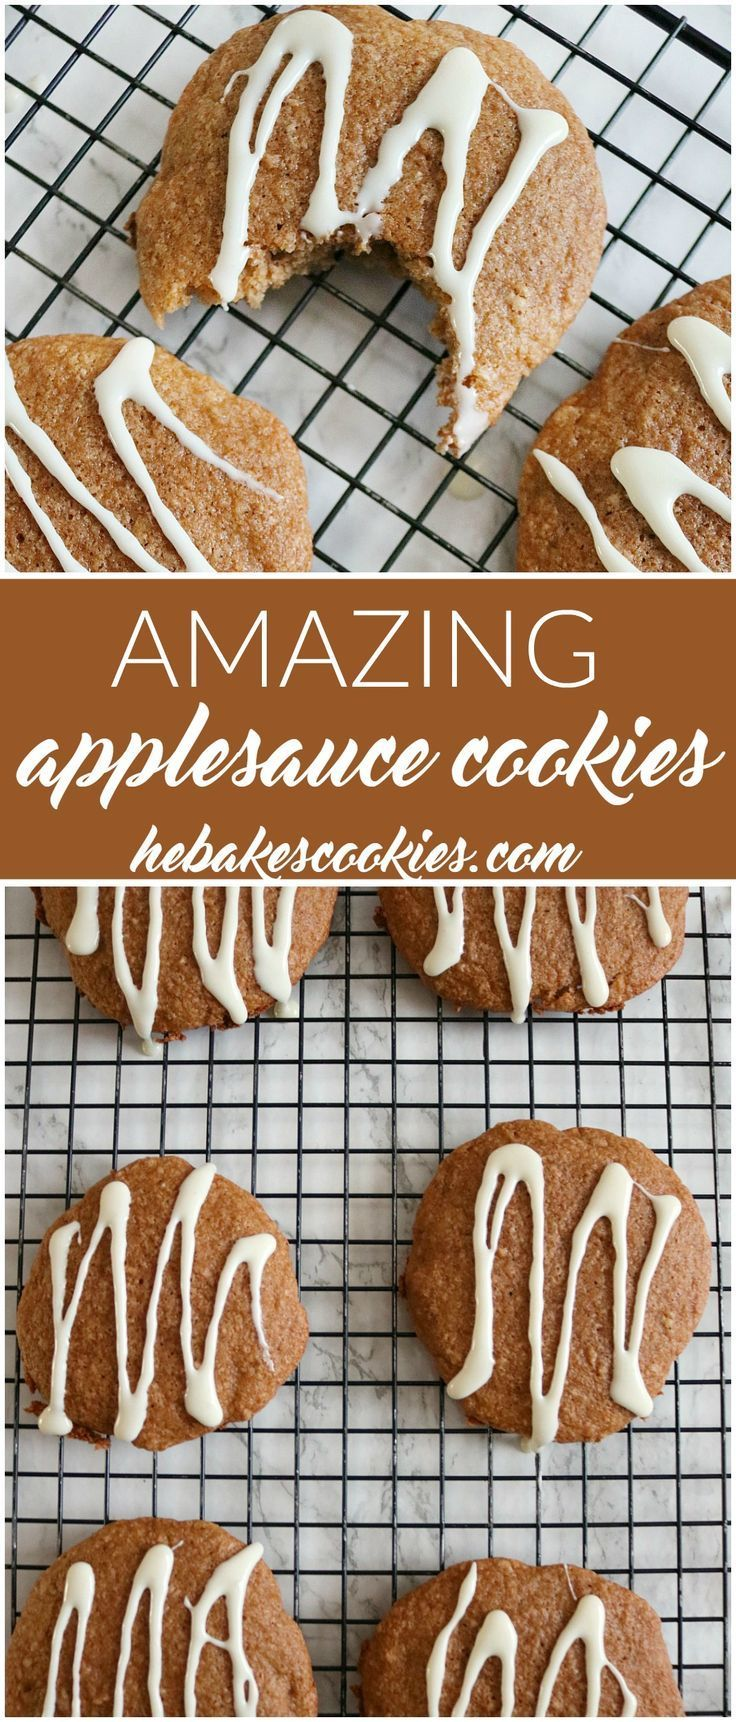 Nothing says fall like apples! These amazing applesauce cookies are soft, moist